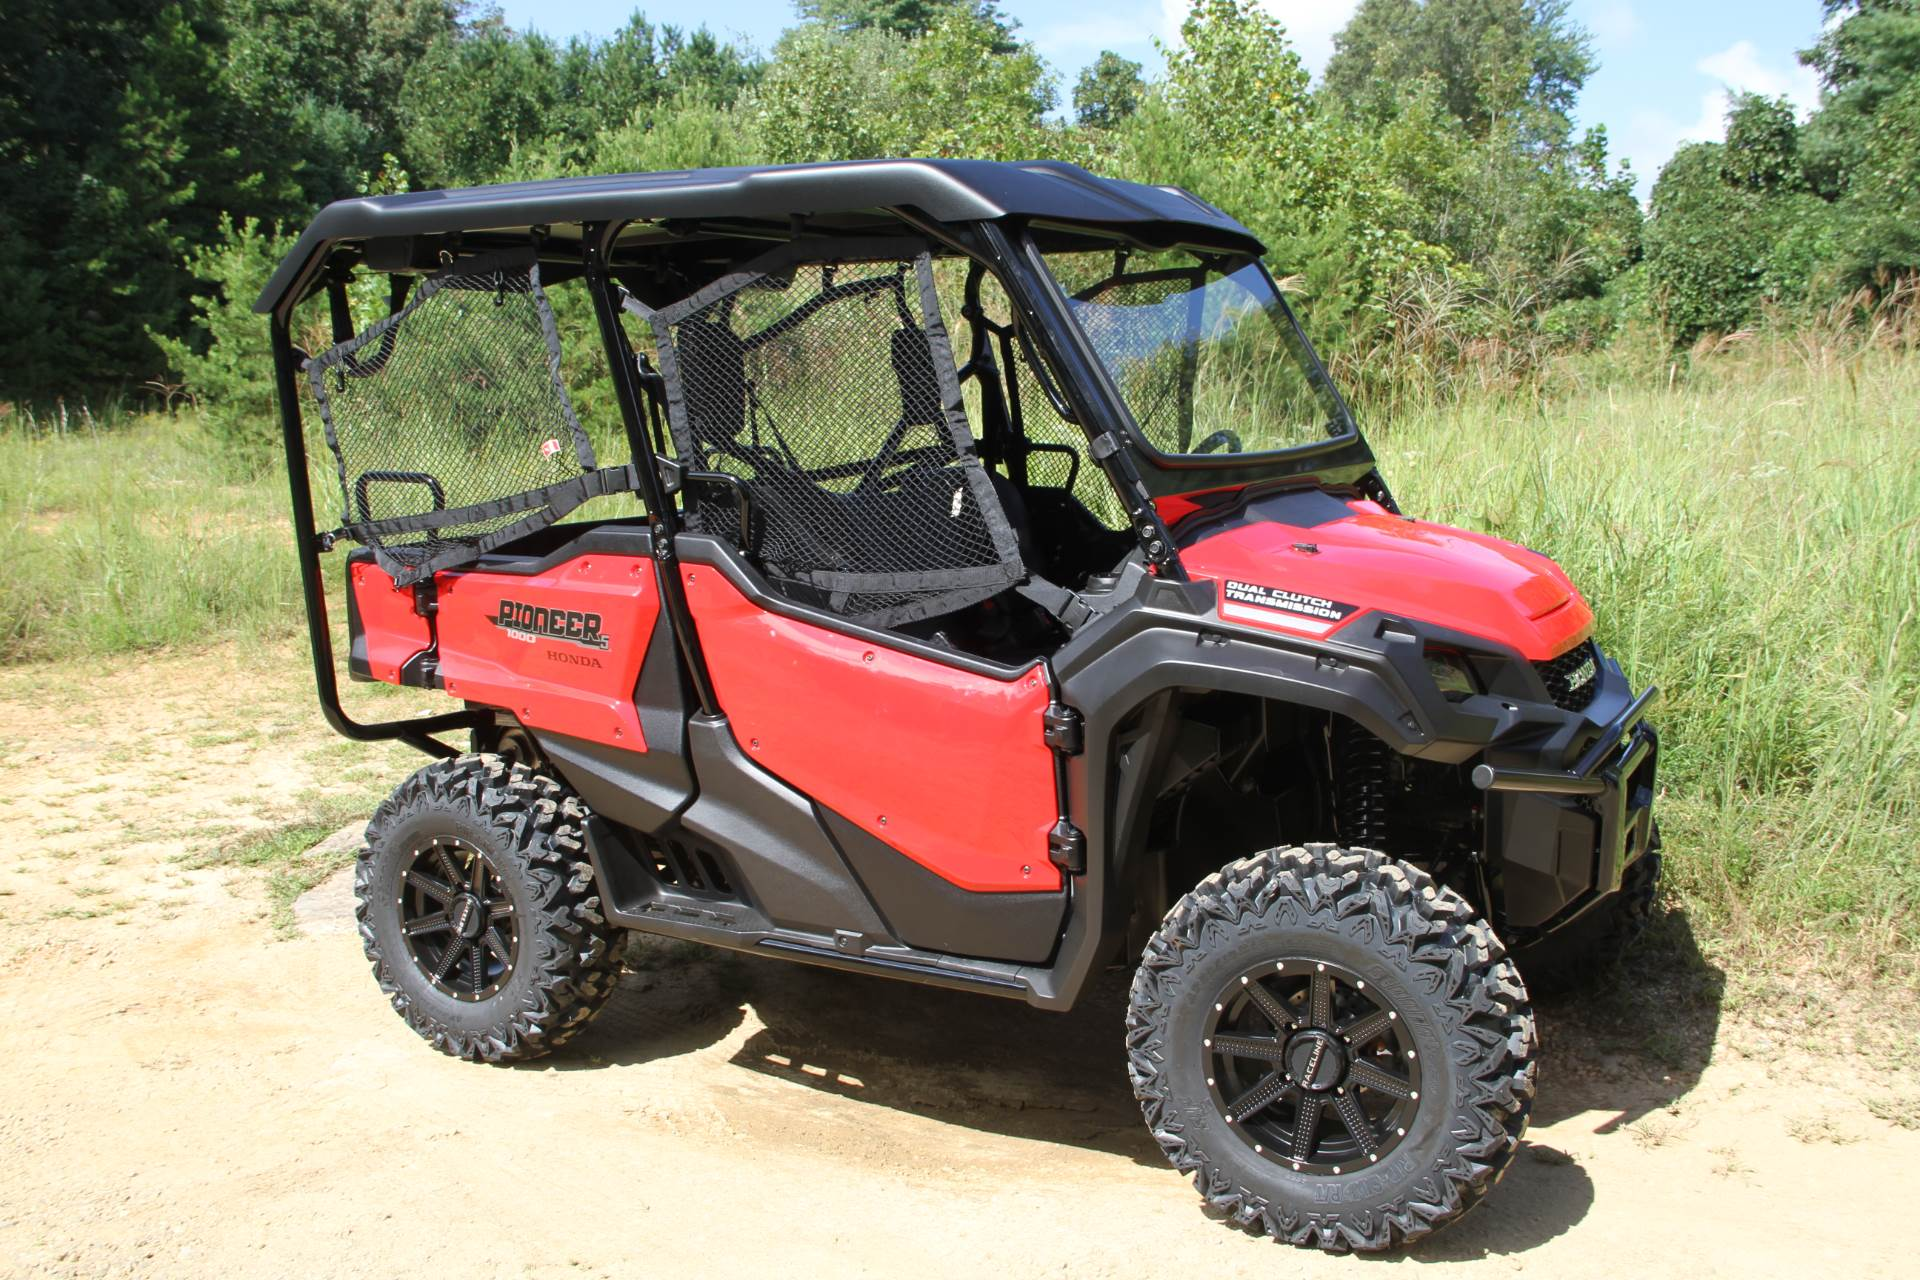 2021 Honda Pioneer 1000-5 Deluxe in Hendersonville, North Carolina - Photo 3